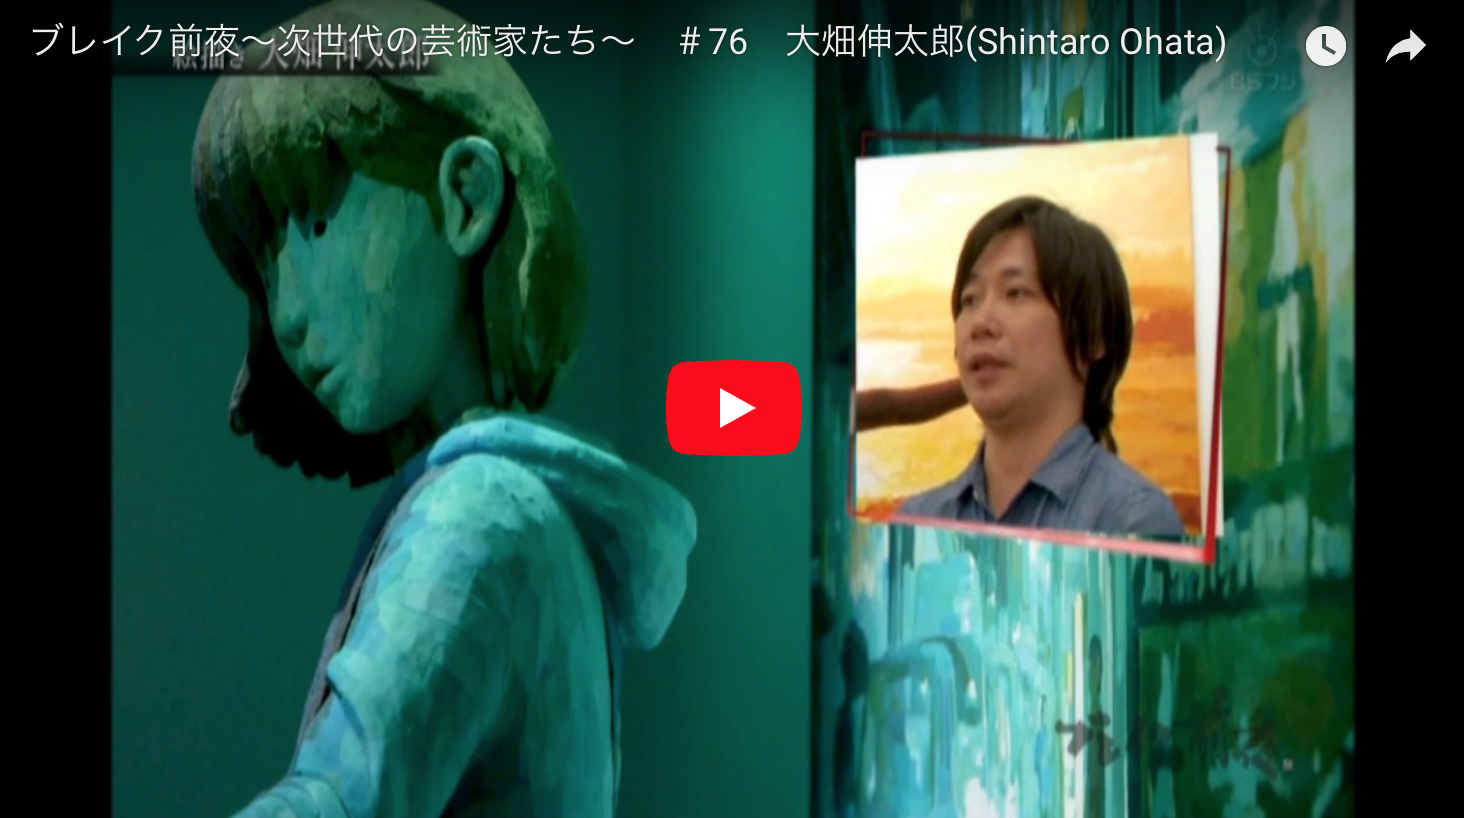 """Break Zenya"",TV program featuring Shintaro OHATA now on youtube!"